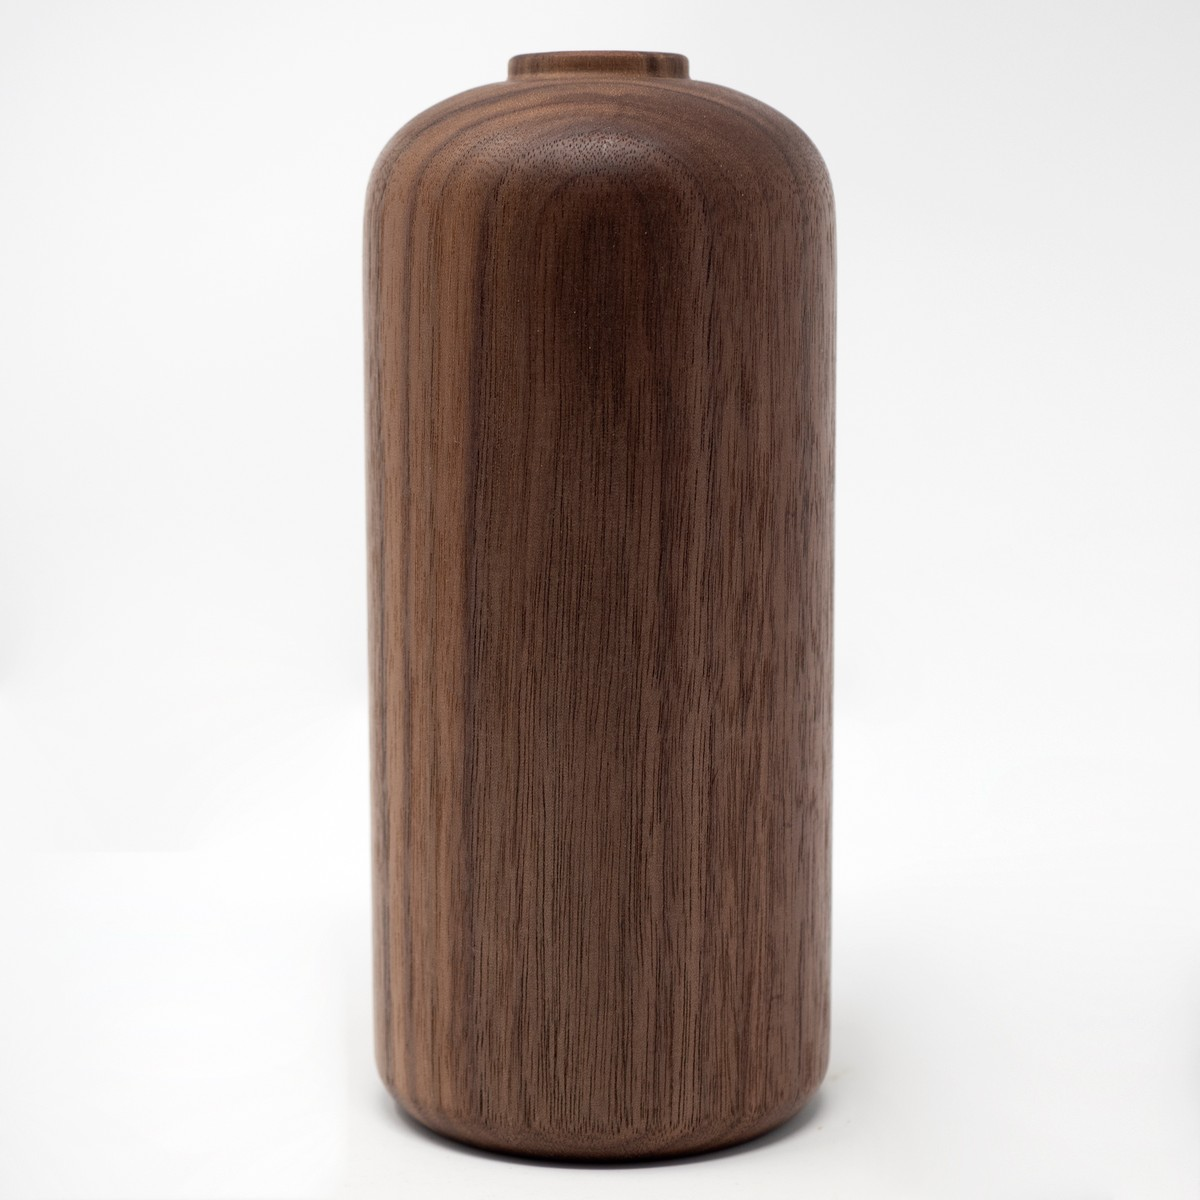 Photo of Hand Carved Walnut Vase